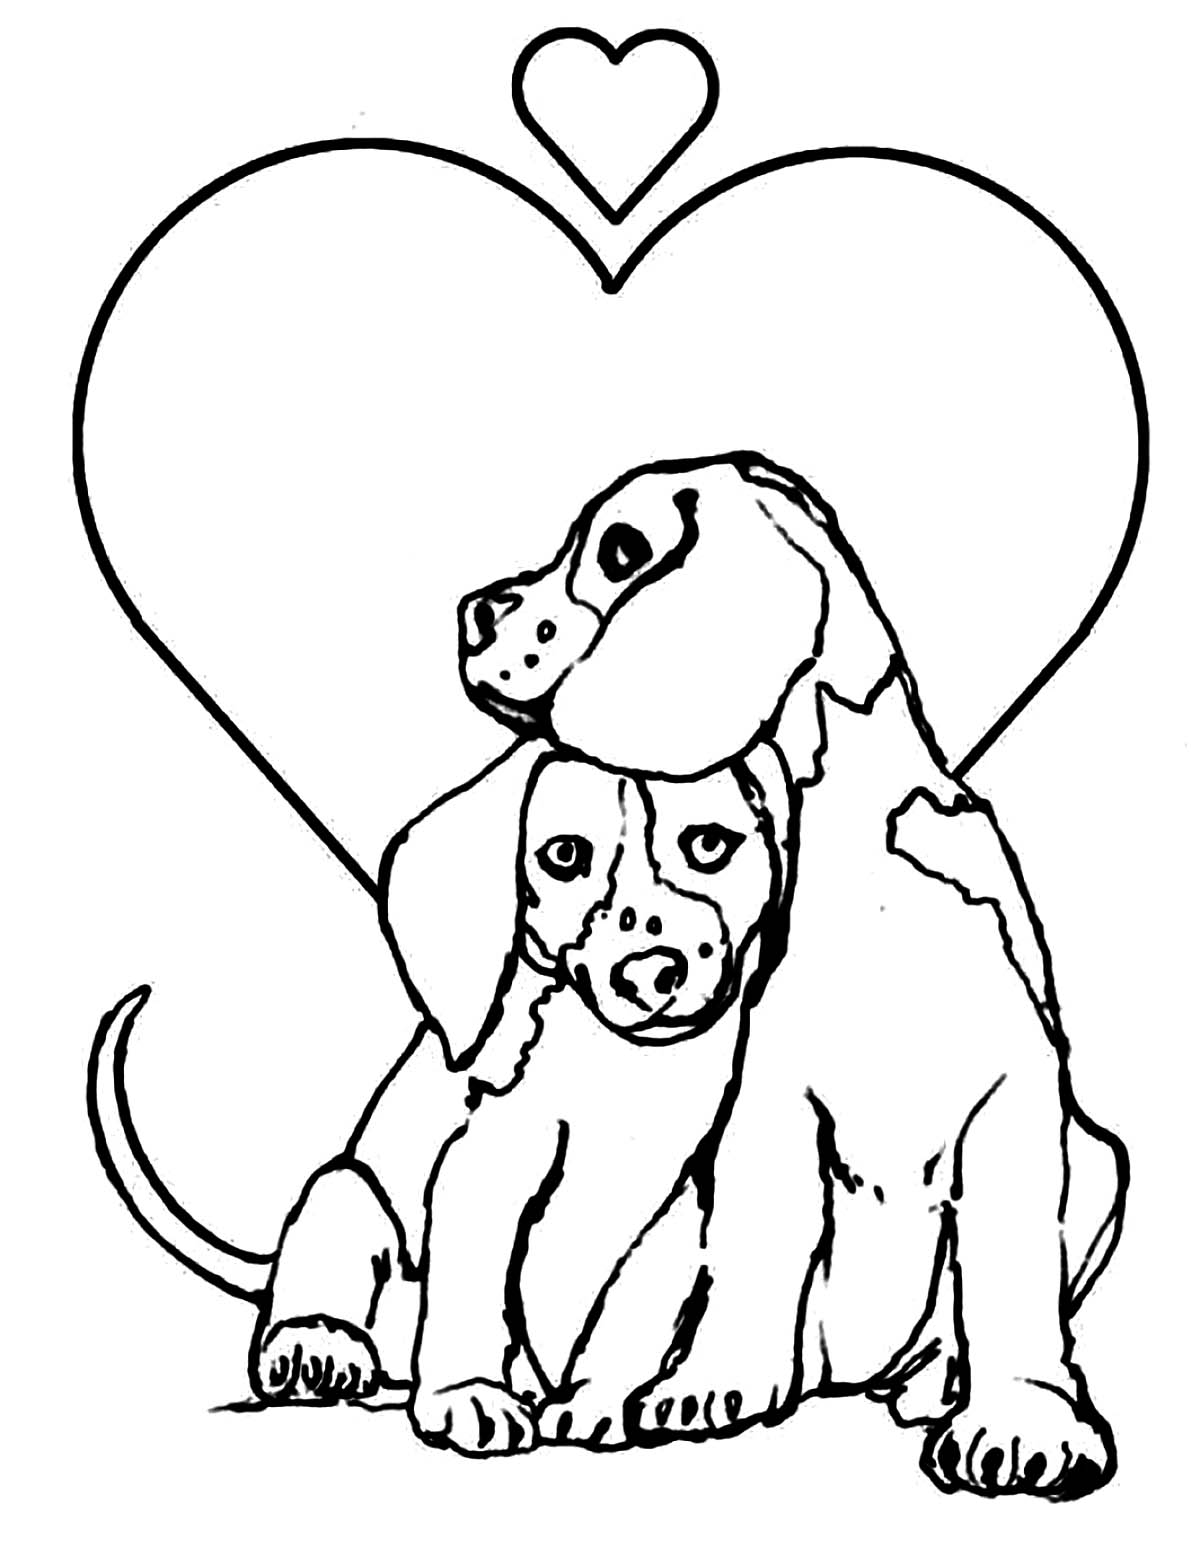 coloring dog for kids dog coloring page for kids free stock photo public for coloring dog kids